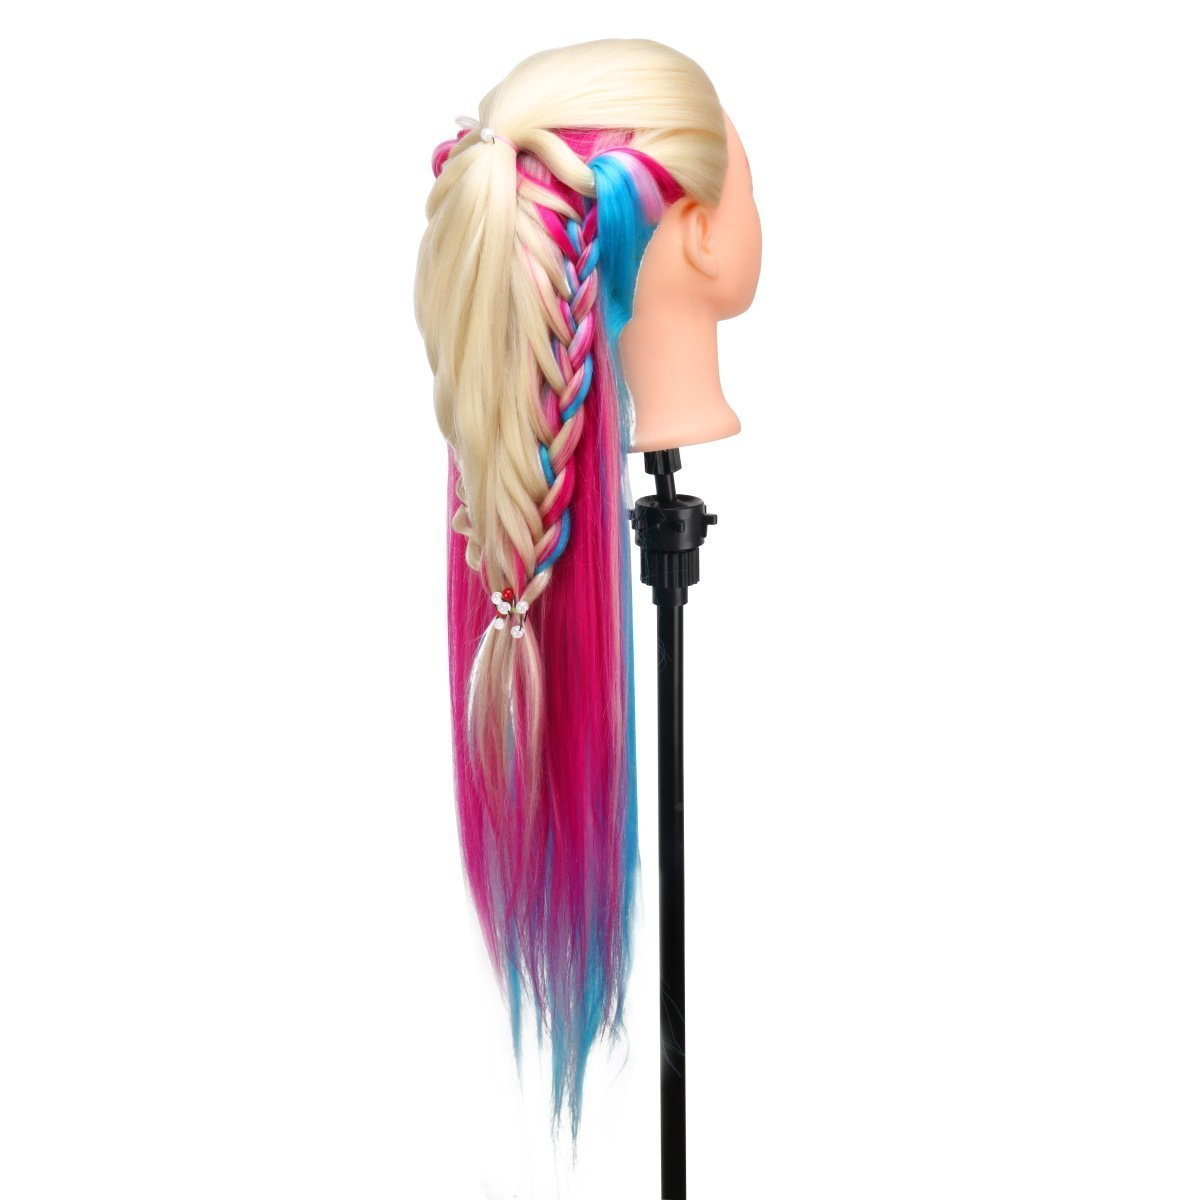 MYSWEETY 29 Inch Colorful Hair Mannequin Head Hairdressing Practice Training Doll Heads Cosmetology Hair Styling Mannequins Heads with Clamp + Practice Tools by MYSWEETY (Image #5)